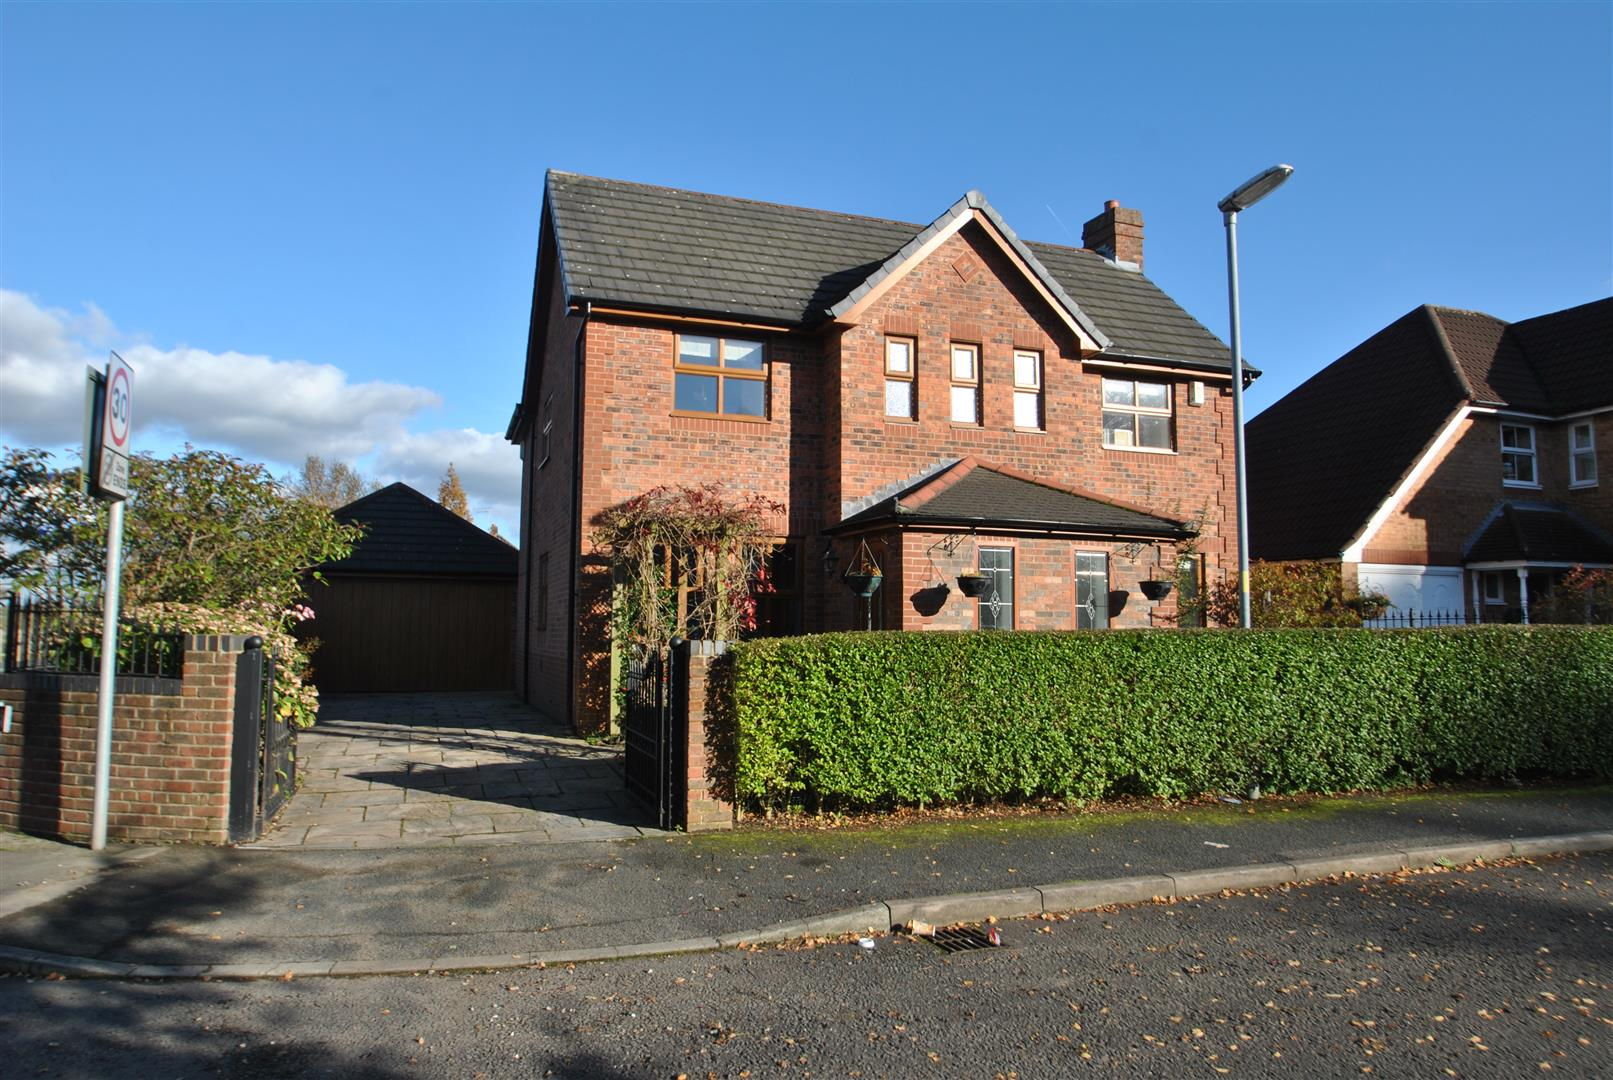 4 Bedrooms Detached House for sale in Poynton Close, GRAPPENHALL, Warrington, WA4